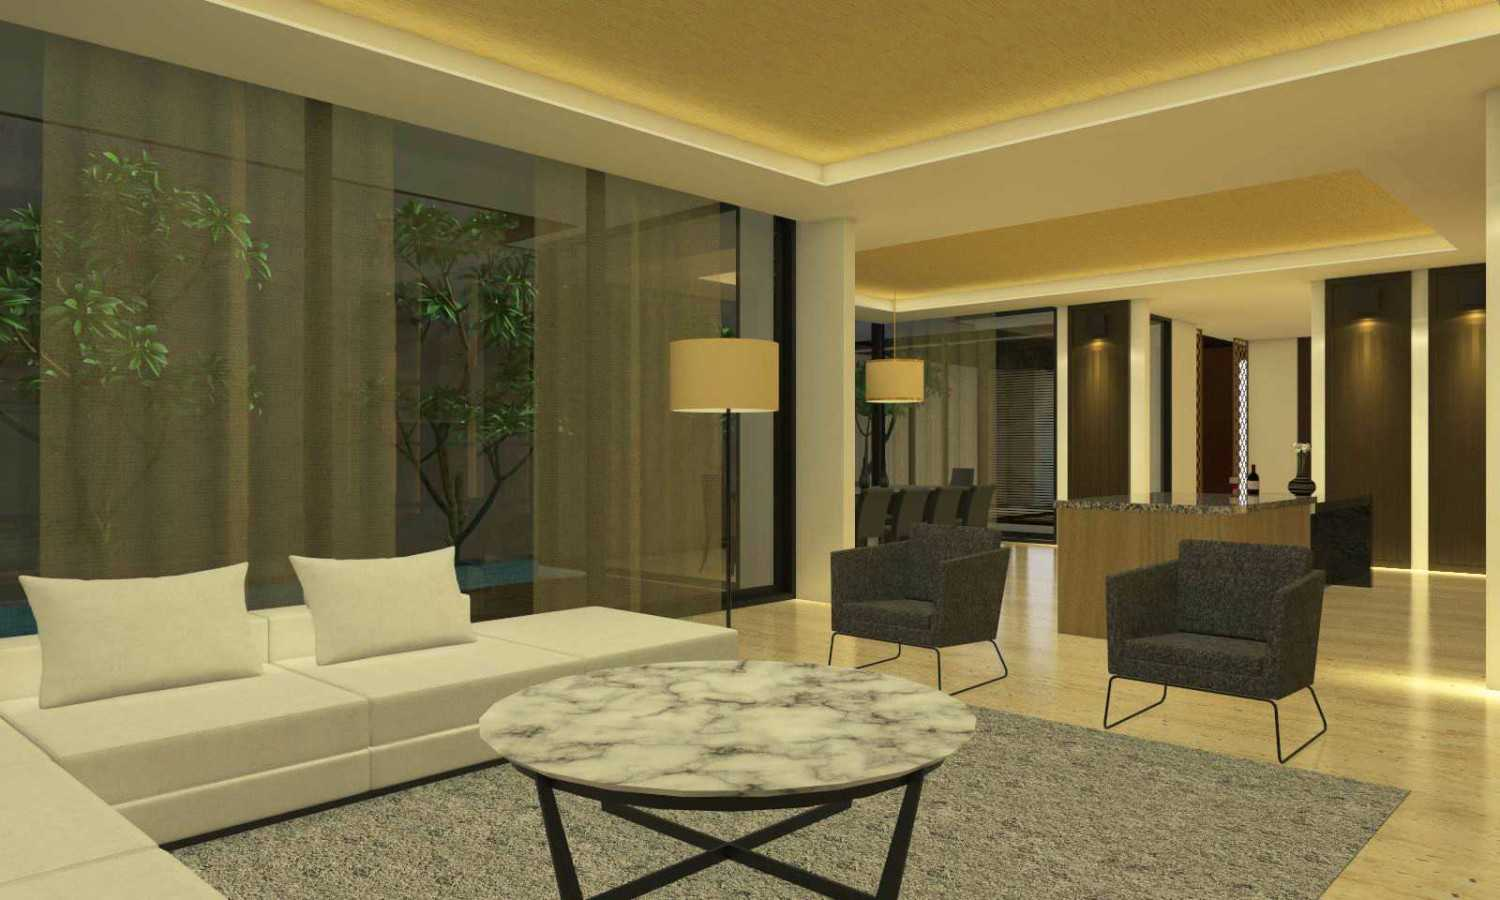 Welly Kusumo Jh Residence Alam Sutra Alam Sutra Livingroom  15214